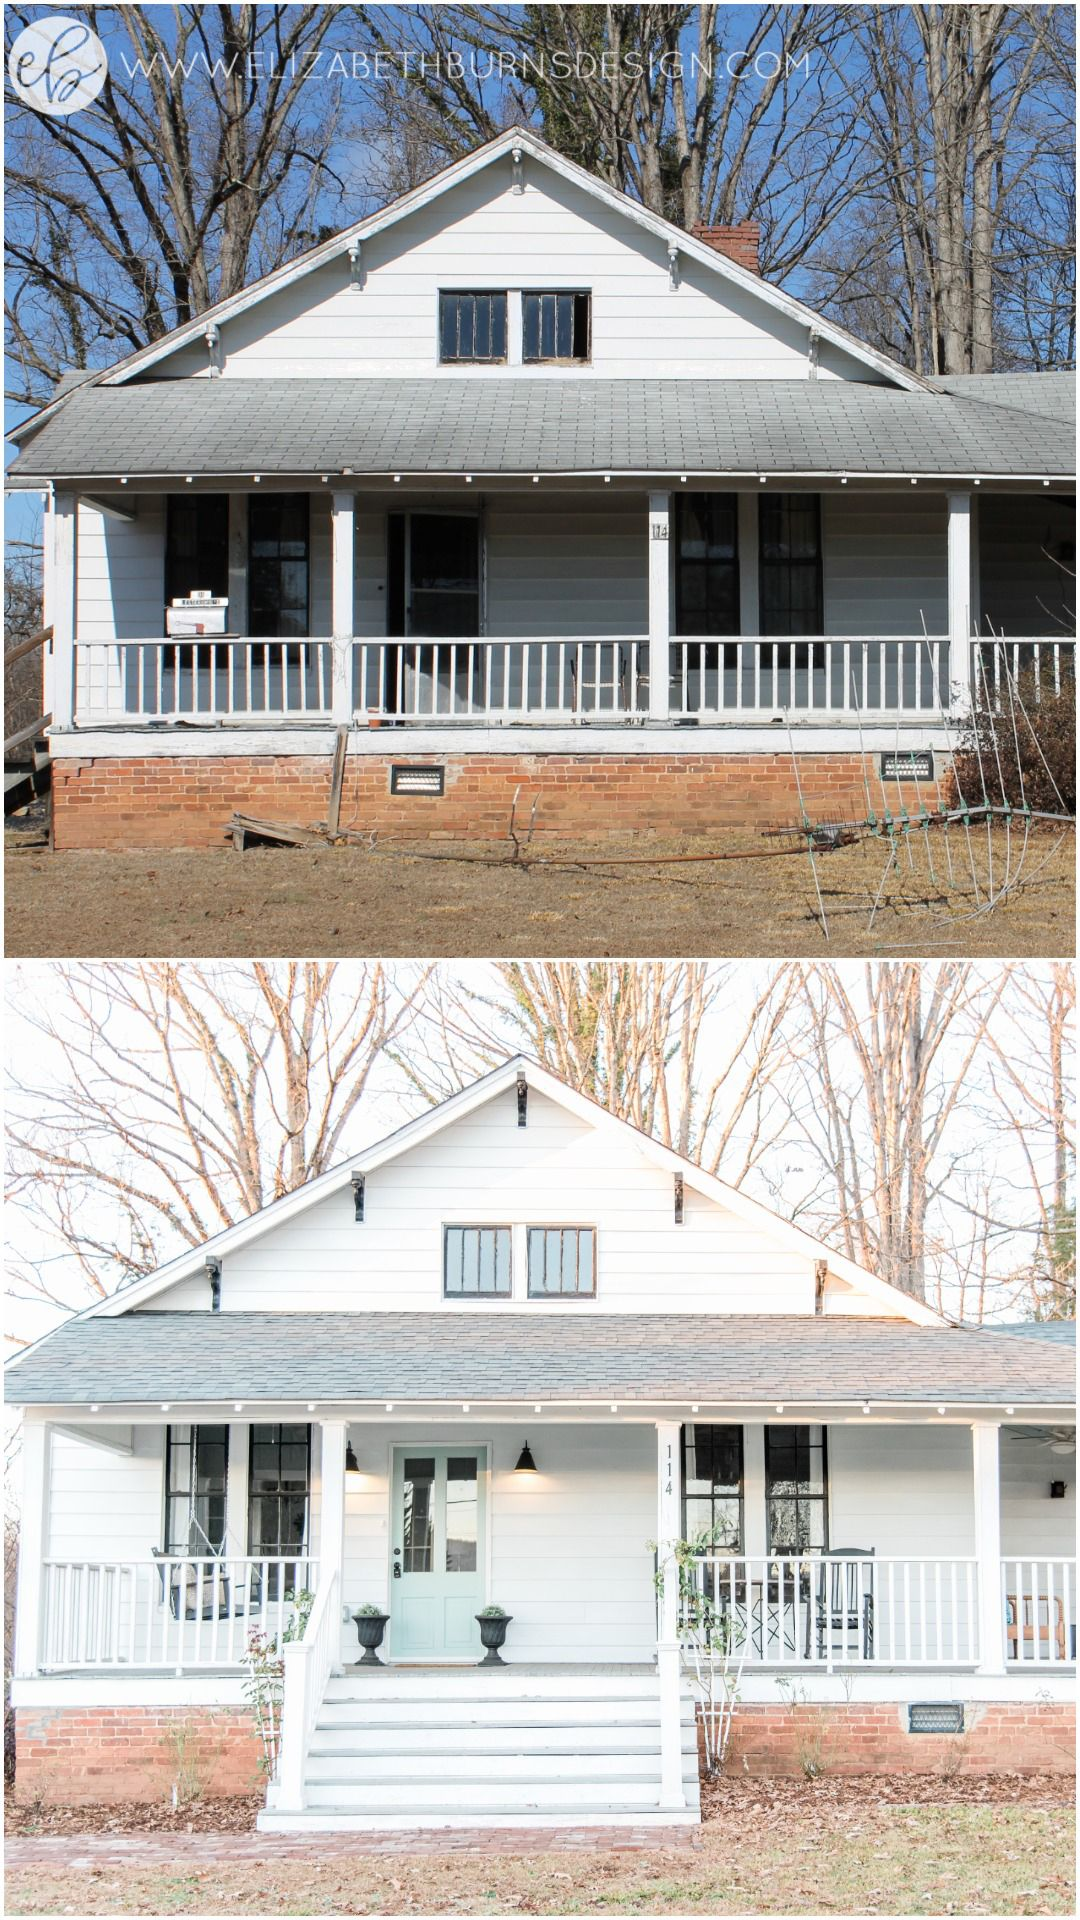 Atlanta Renovations Before After Photos With Images: Farmhouse Fixer Upper Before And After DIY Renovation On A Budget